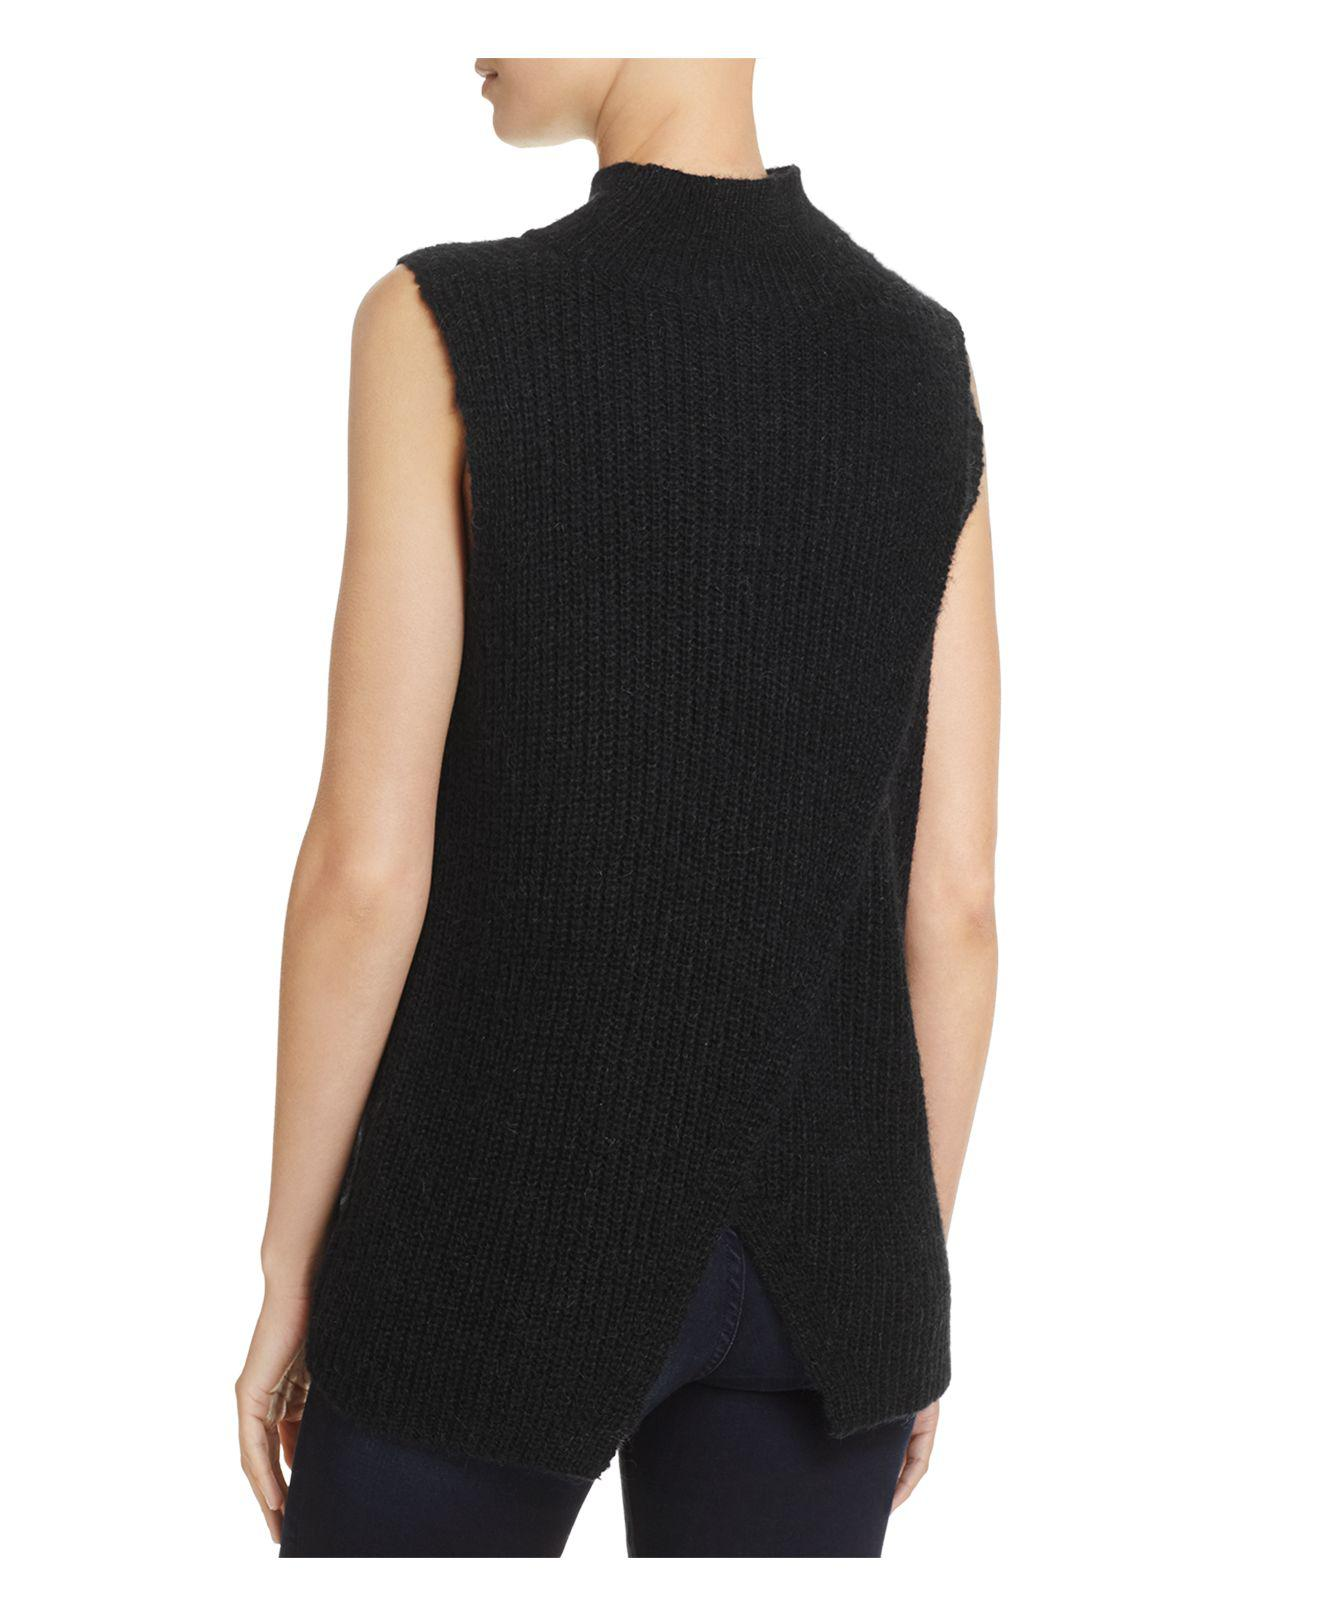 French connection Mathilde Knits Ribbed Sweater Vest in Black | Lyst